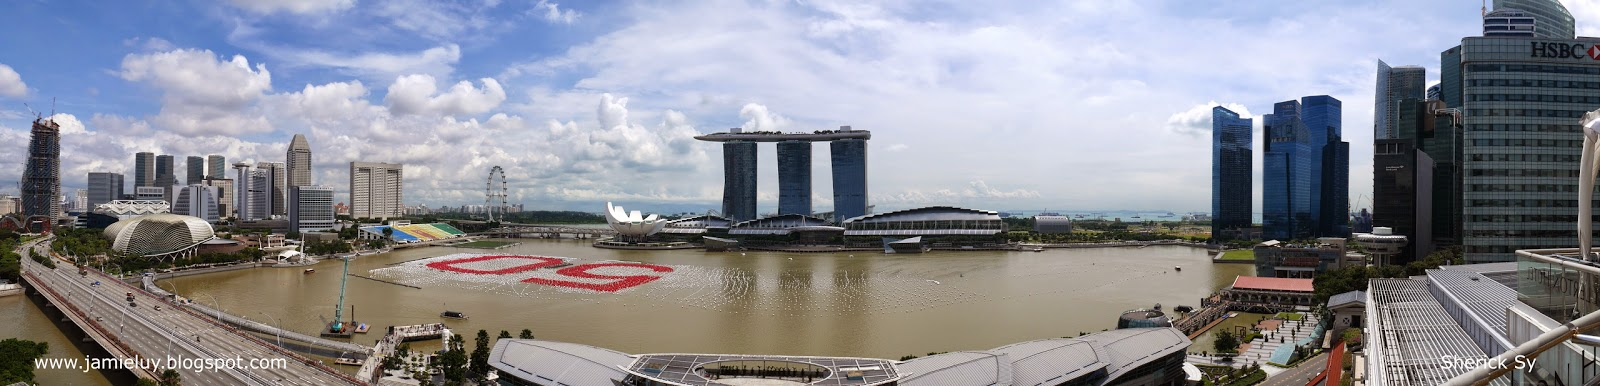 50 Years, Marina Bay Sands, Singapore